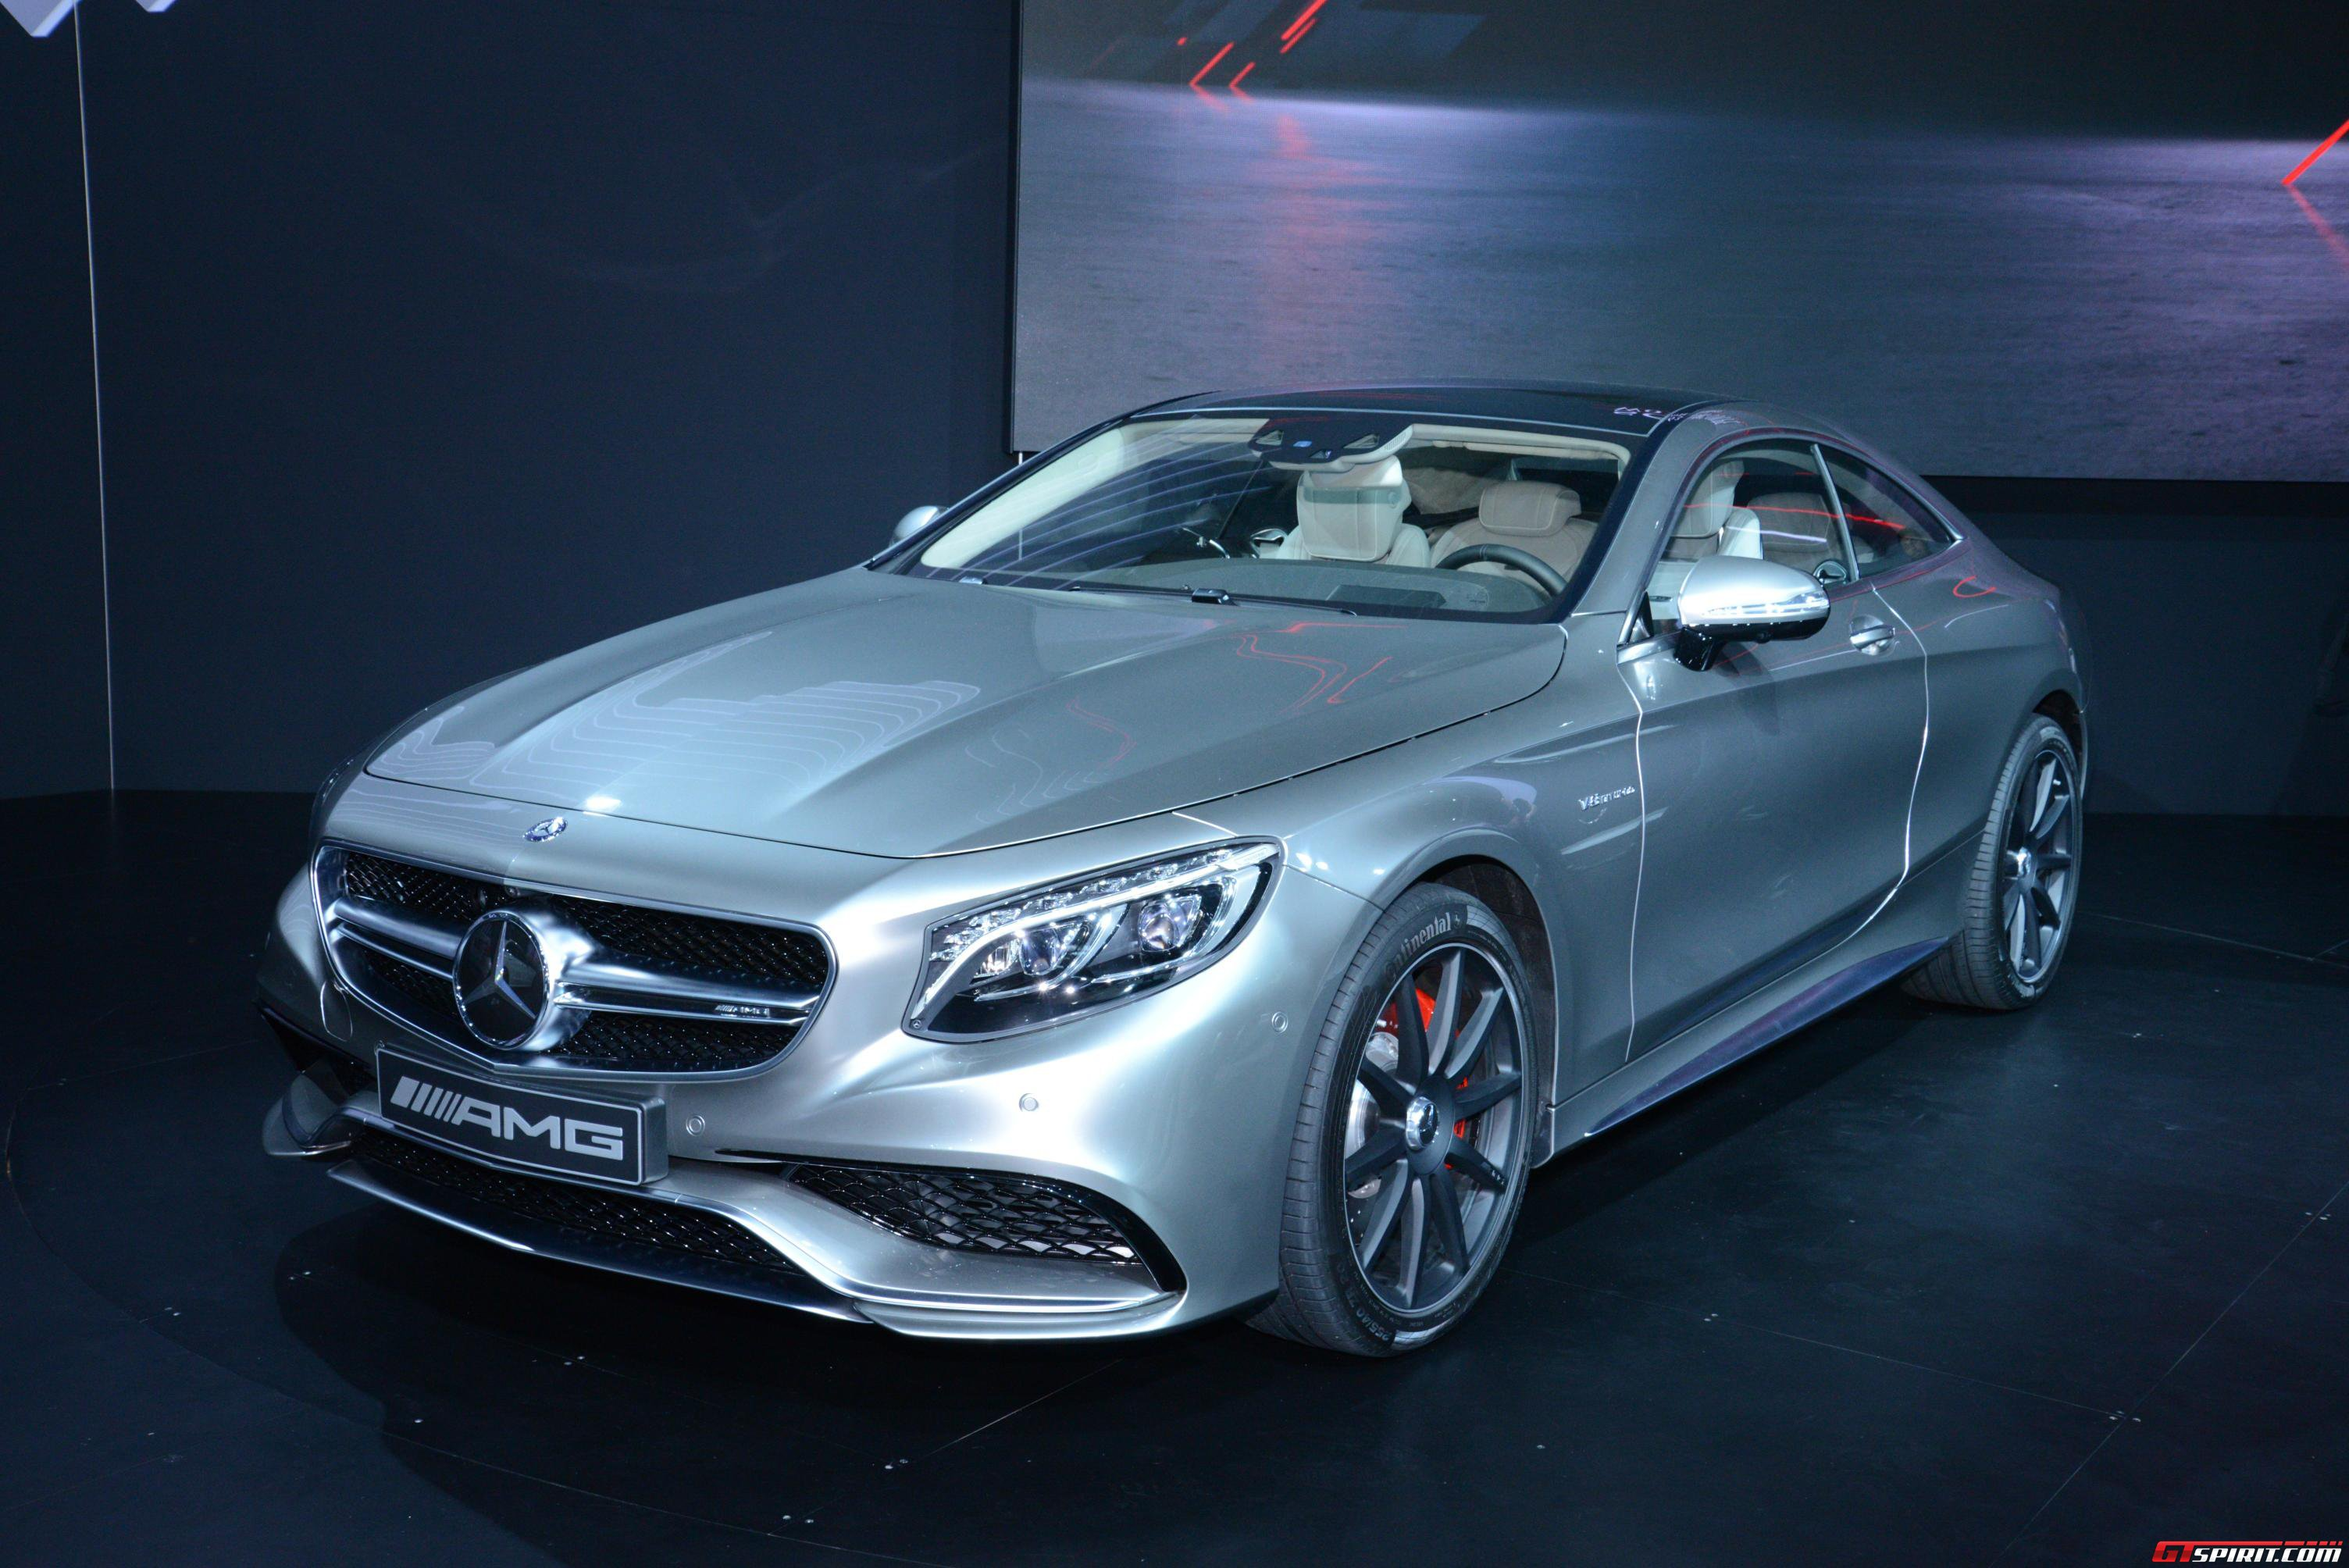 New York 2014: Mercedes Benz S63 AMG 4MATIC Coupe